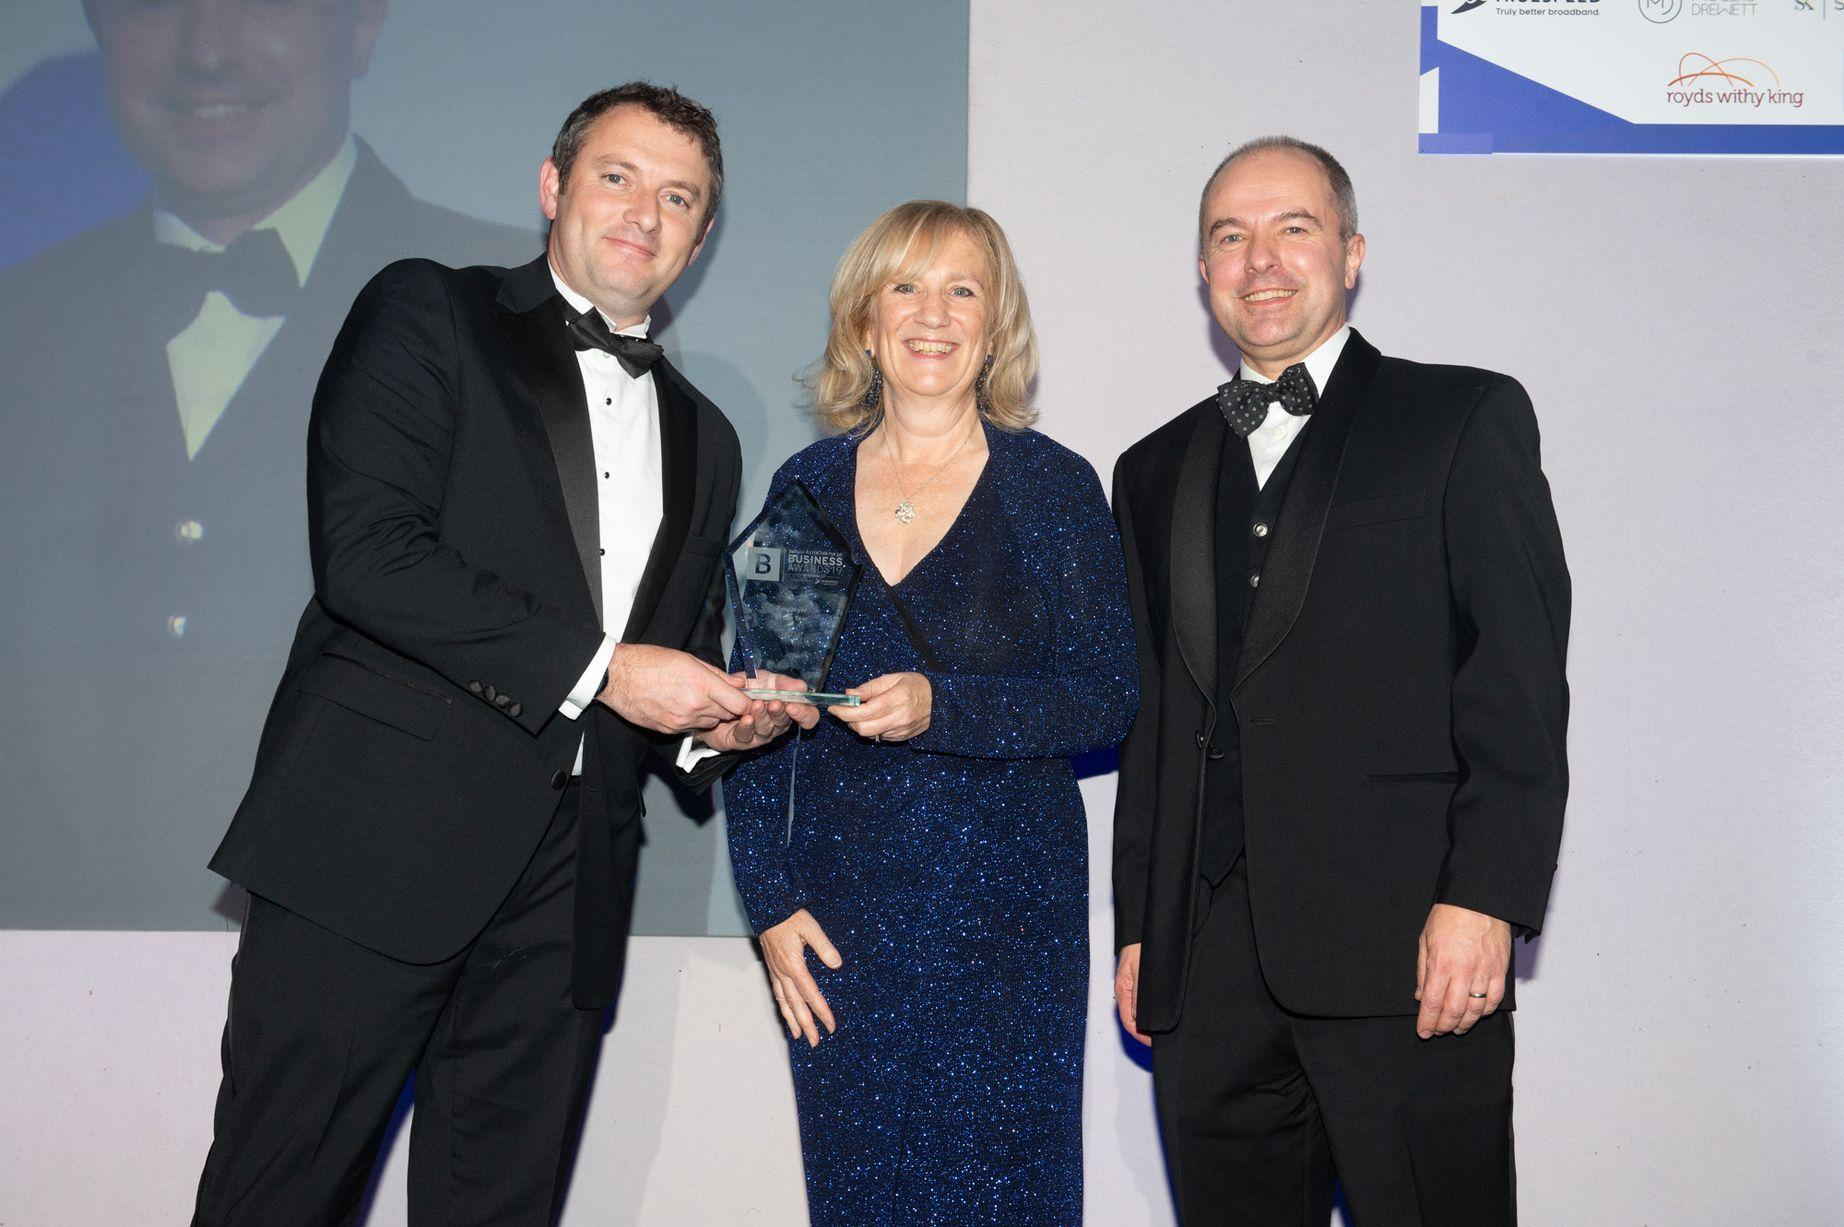 HGEM Awarded Employer of the Year at Bath Business Awards